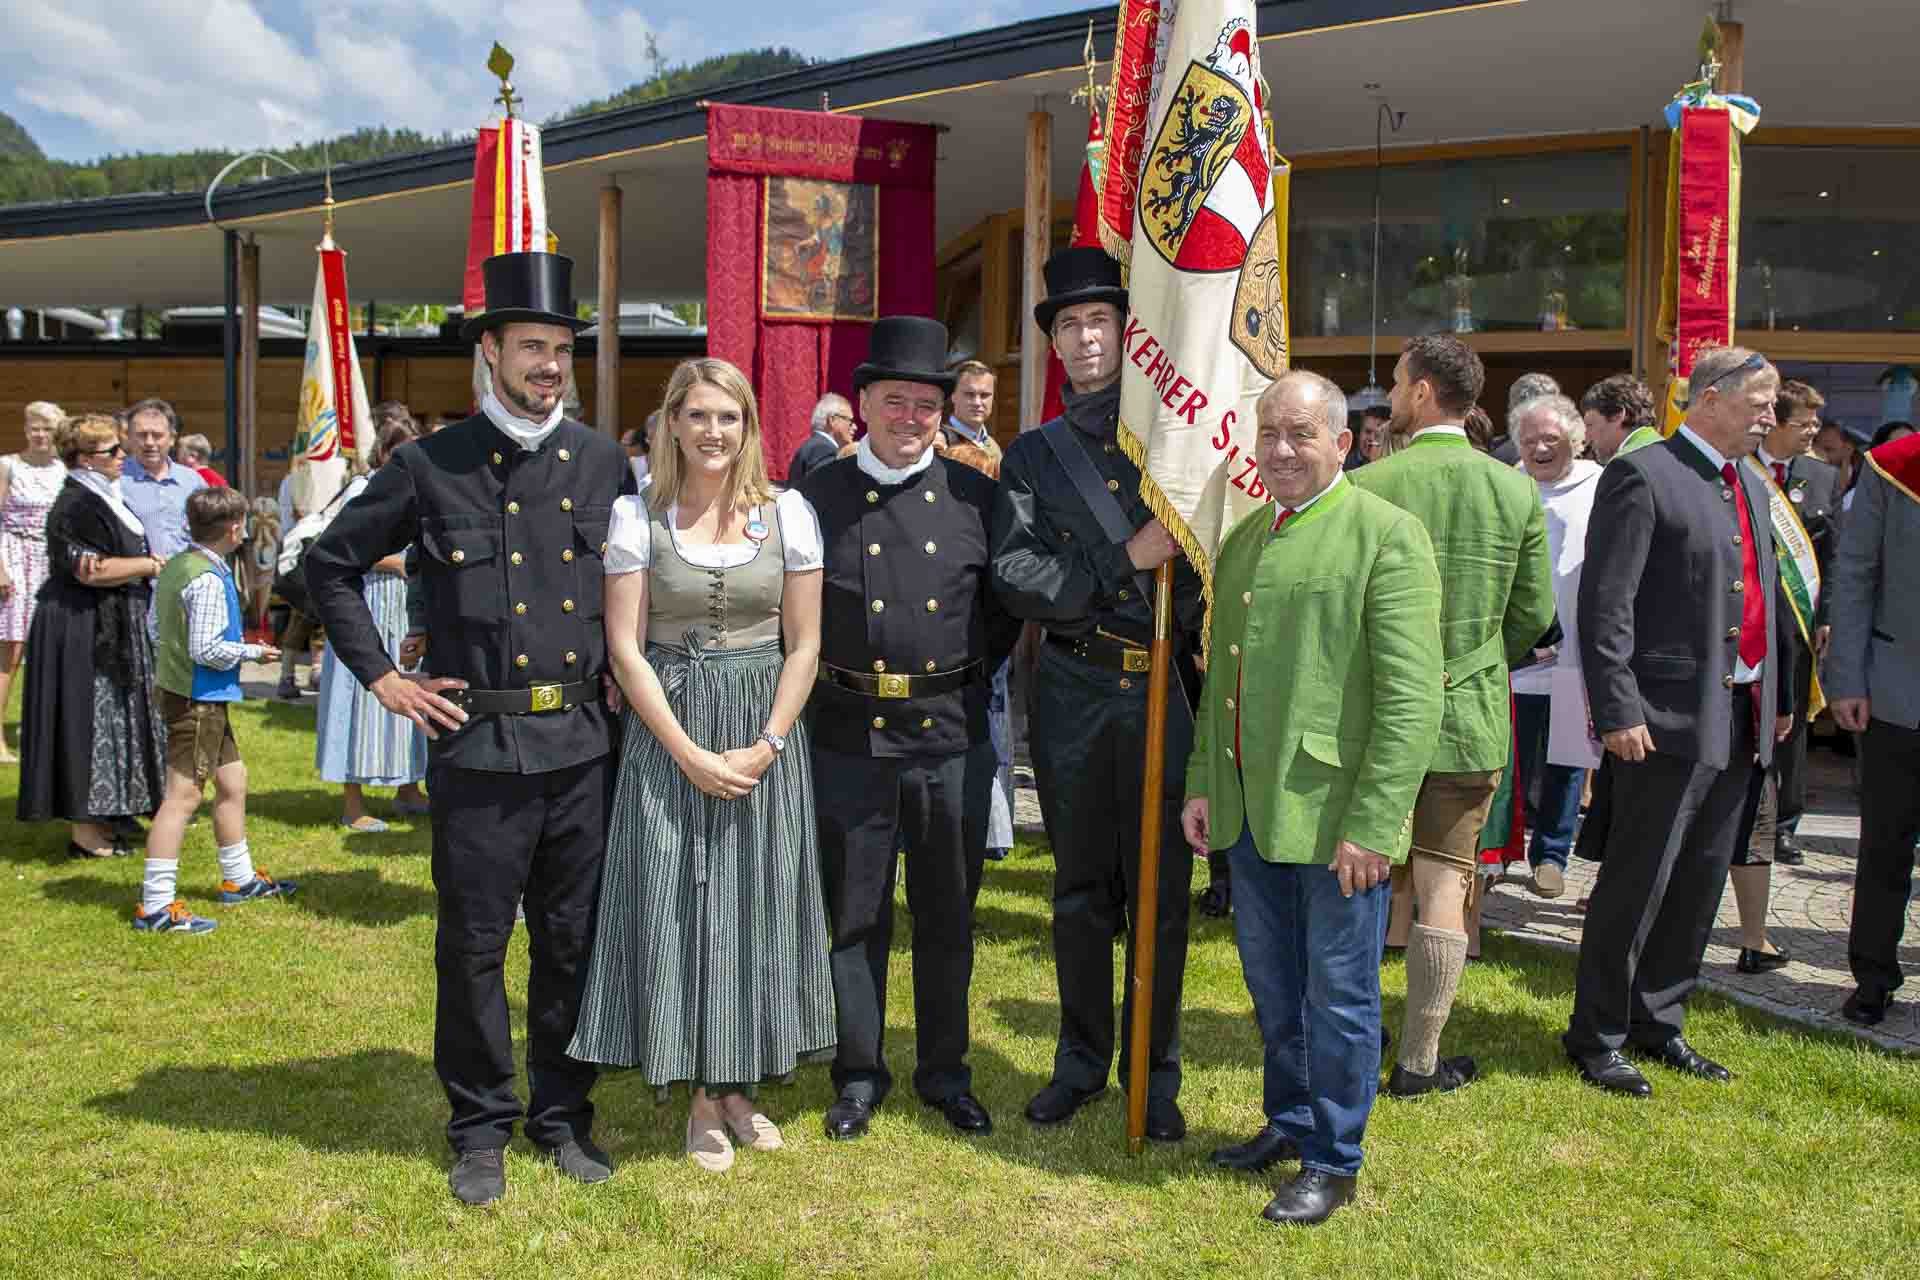 86. Bundestagung der Hafner am 01.06.2019 in St. Gilgen